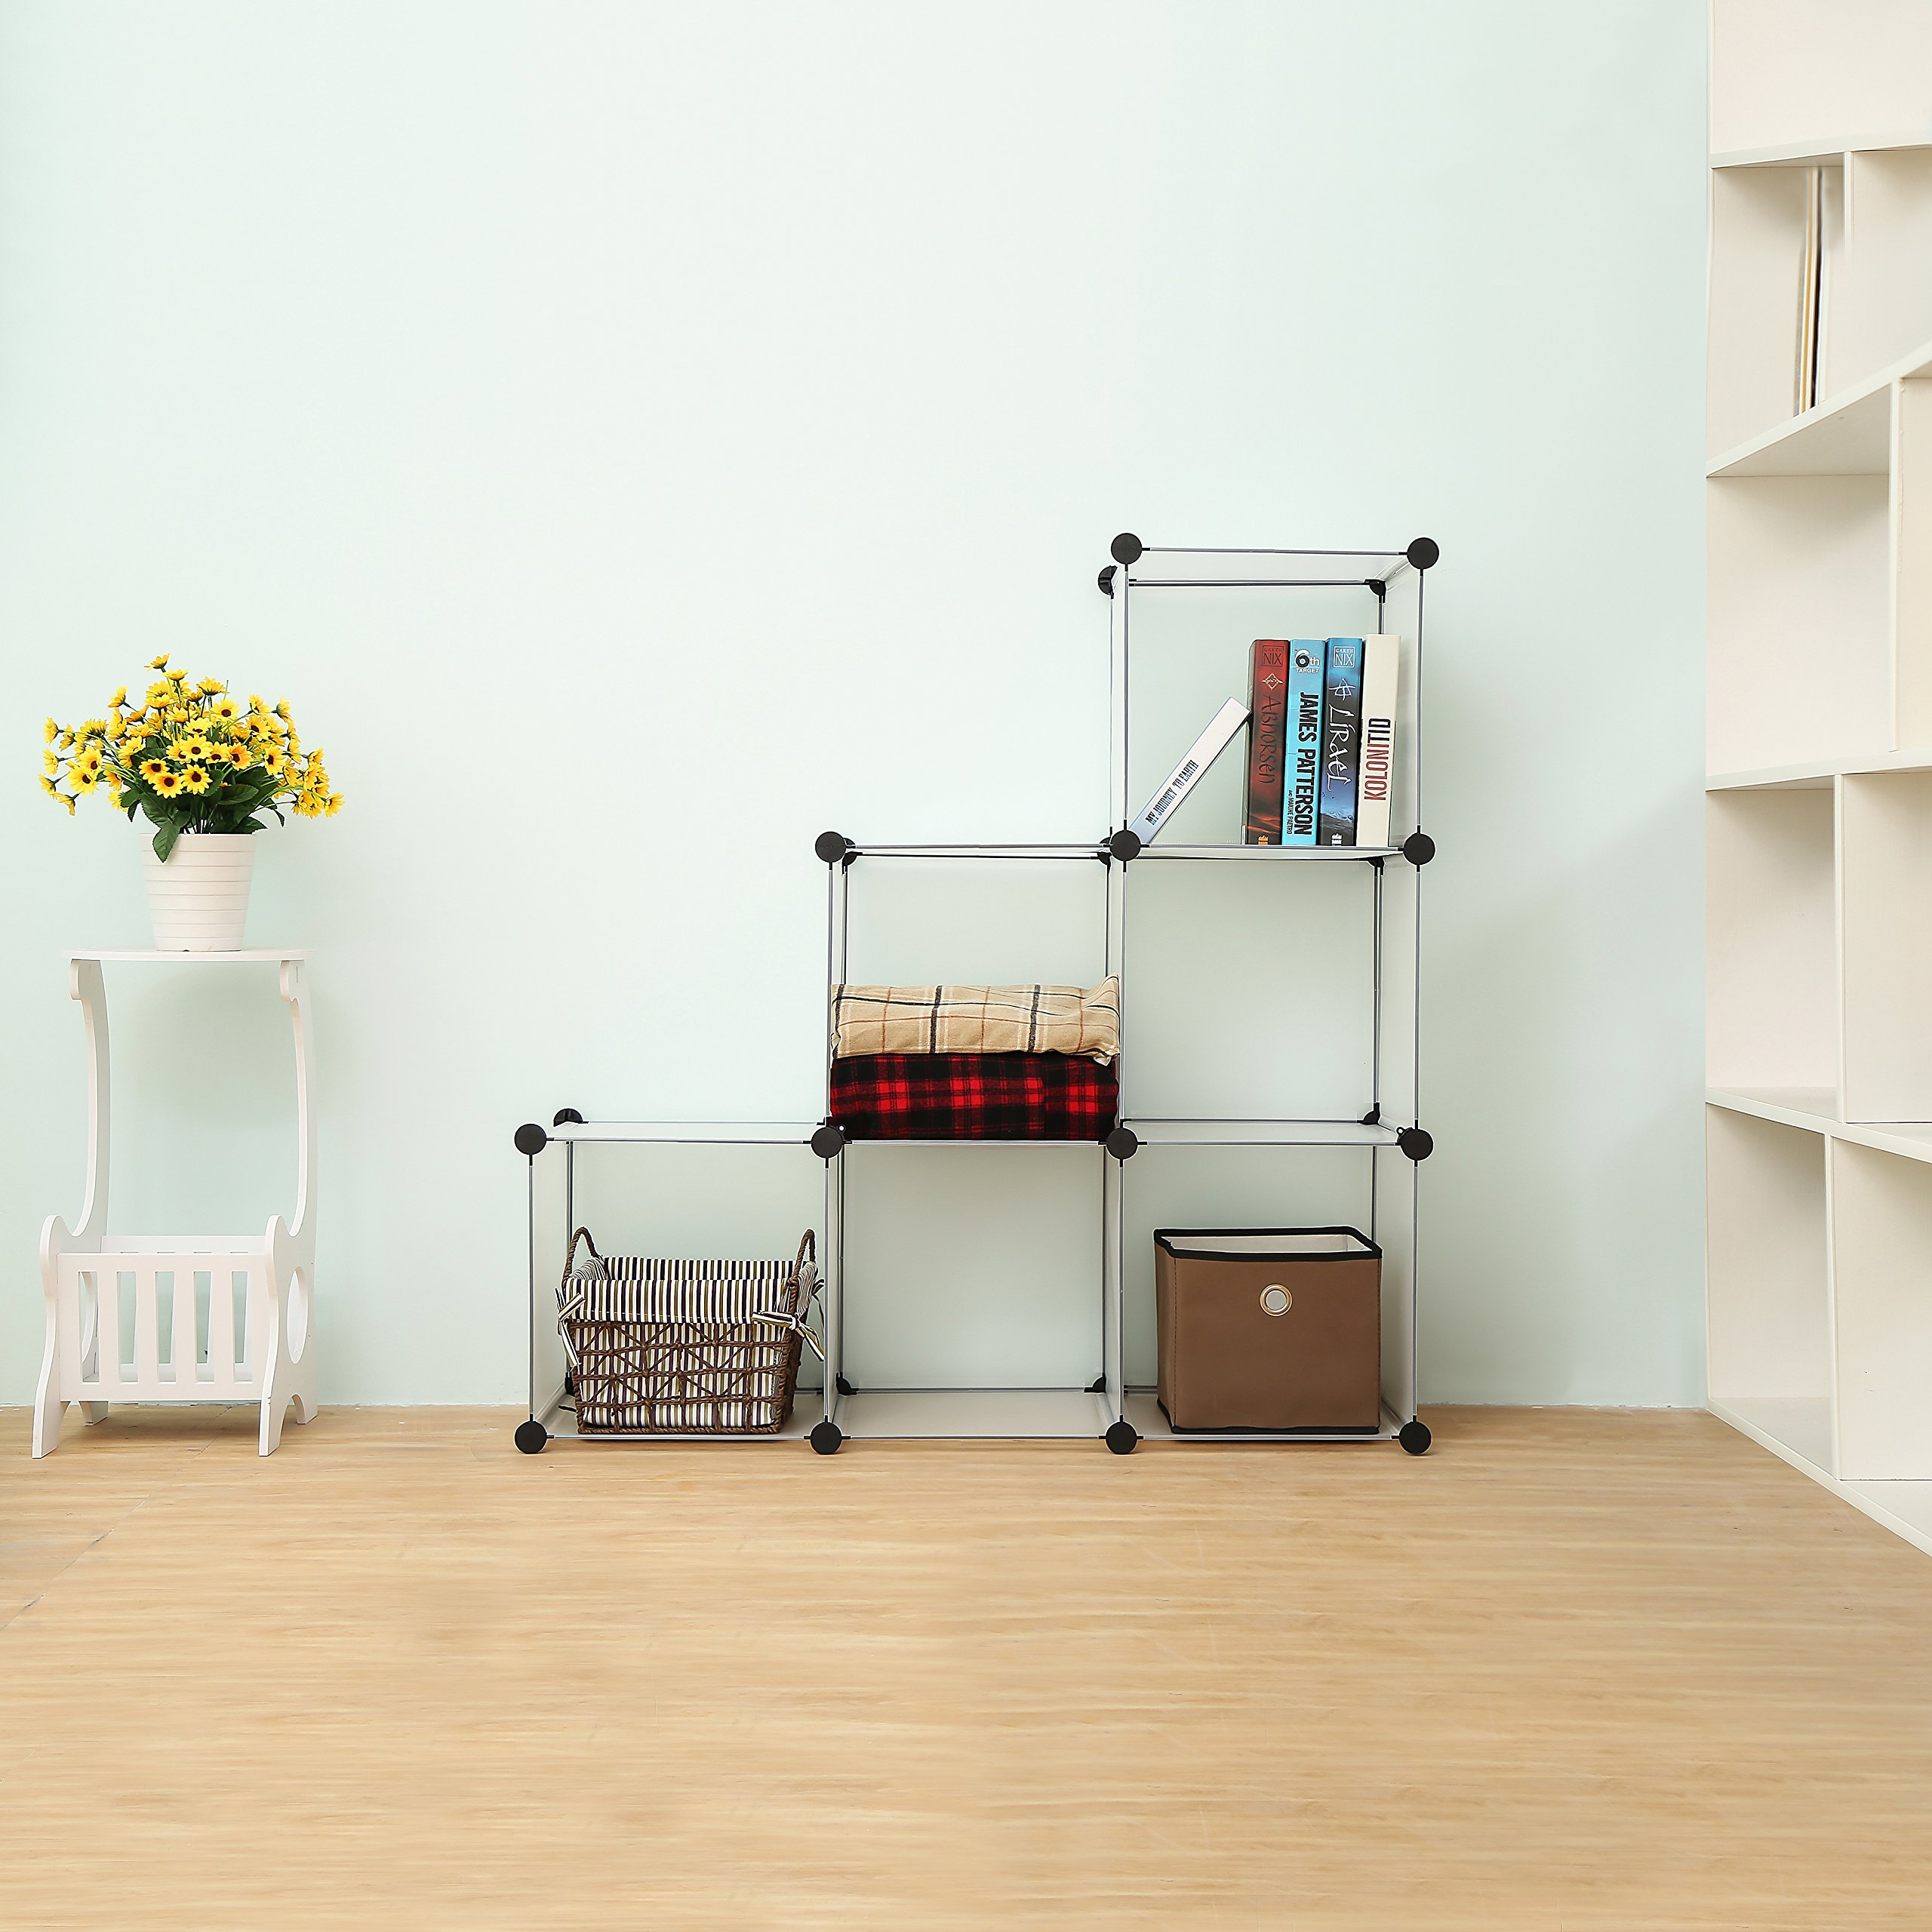 C&AHOME - DIY Bookcase Media Storage Standing Shelf Storage Cabinet Cube of 6, Semitransparent by C&AHOME (Image #3)